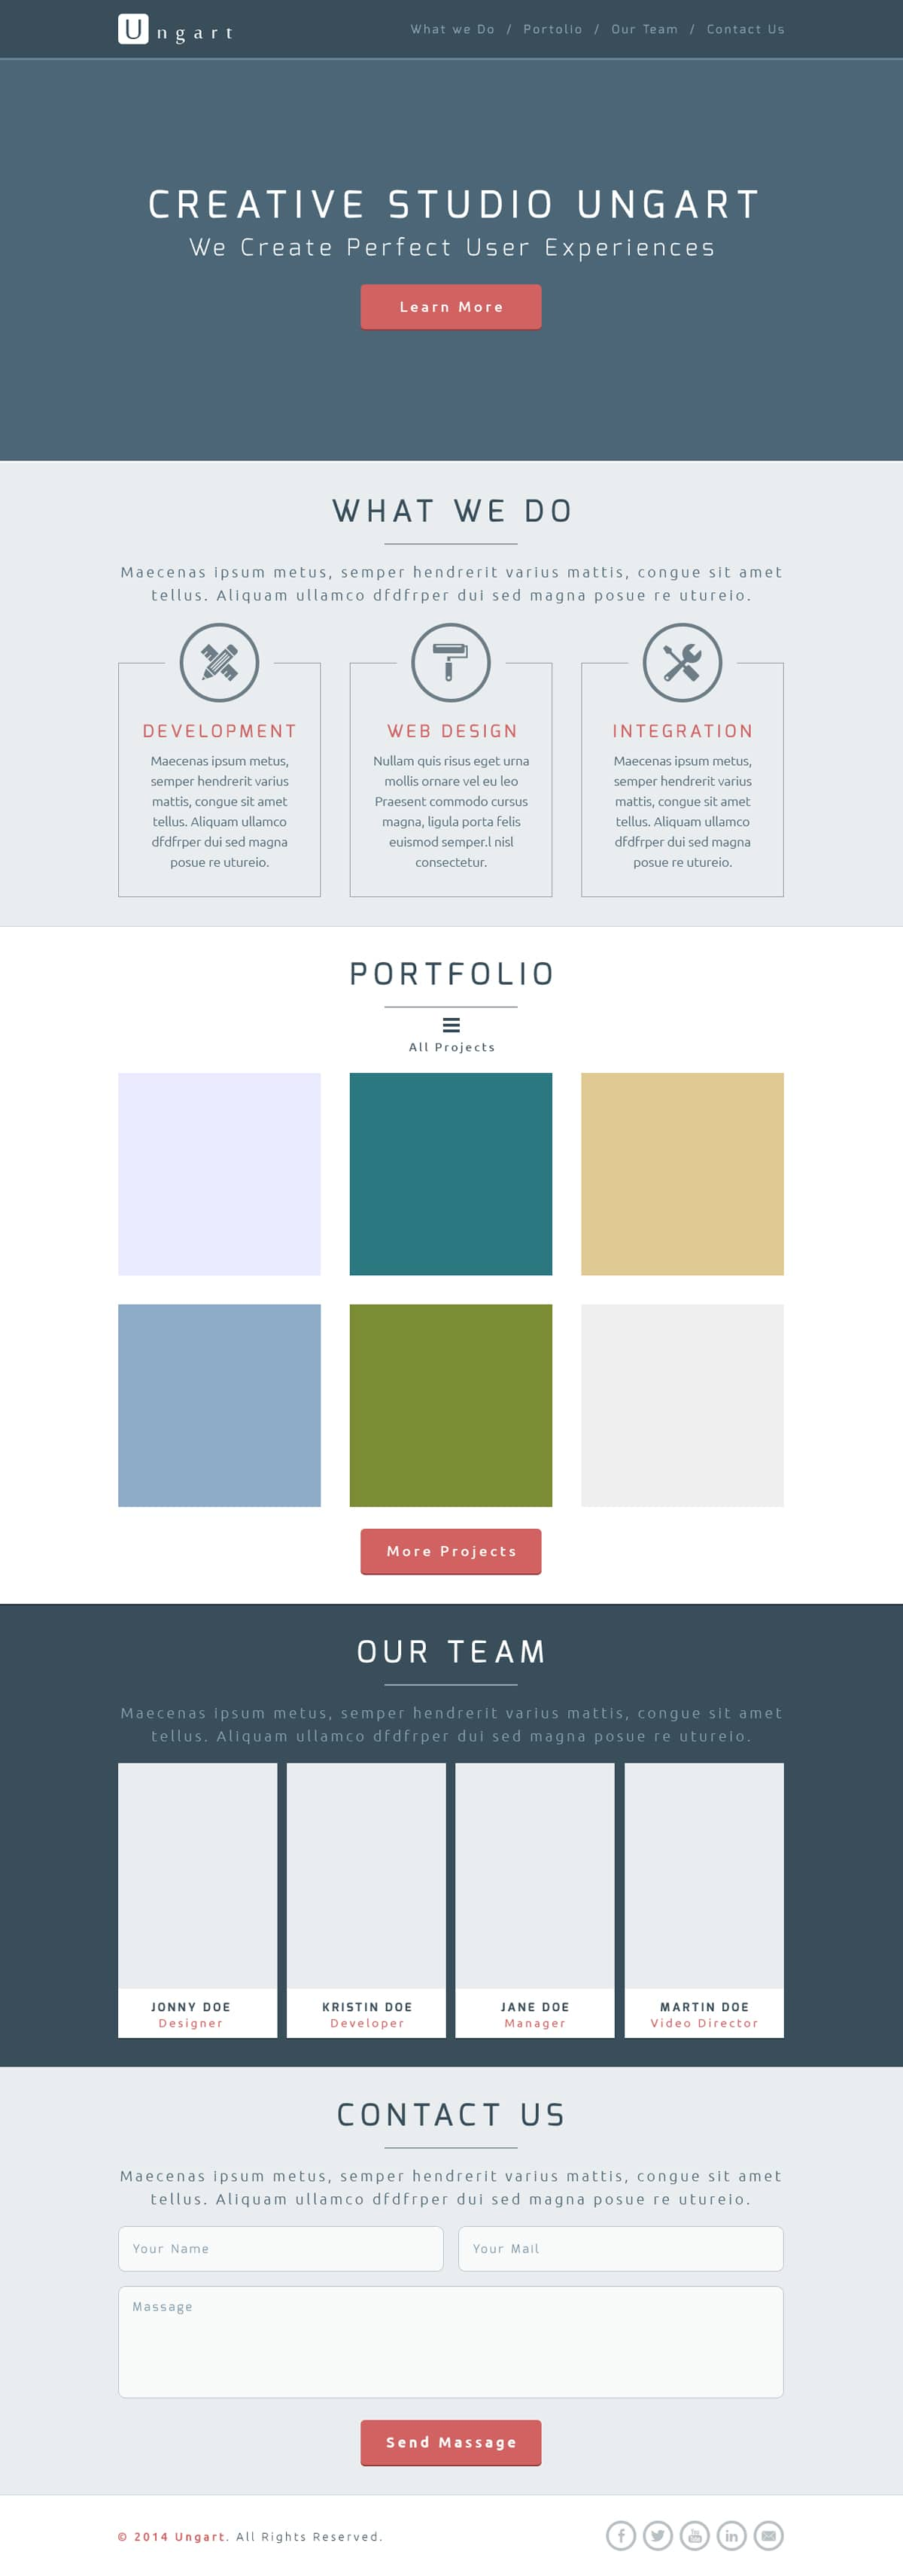 Ungart – One Page Free PSD Template